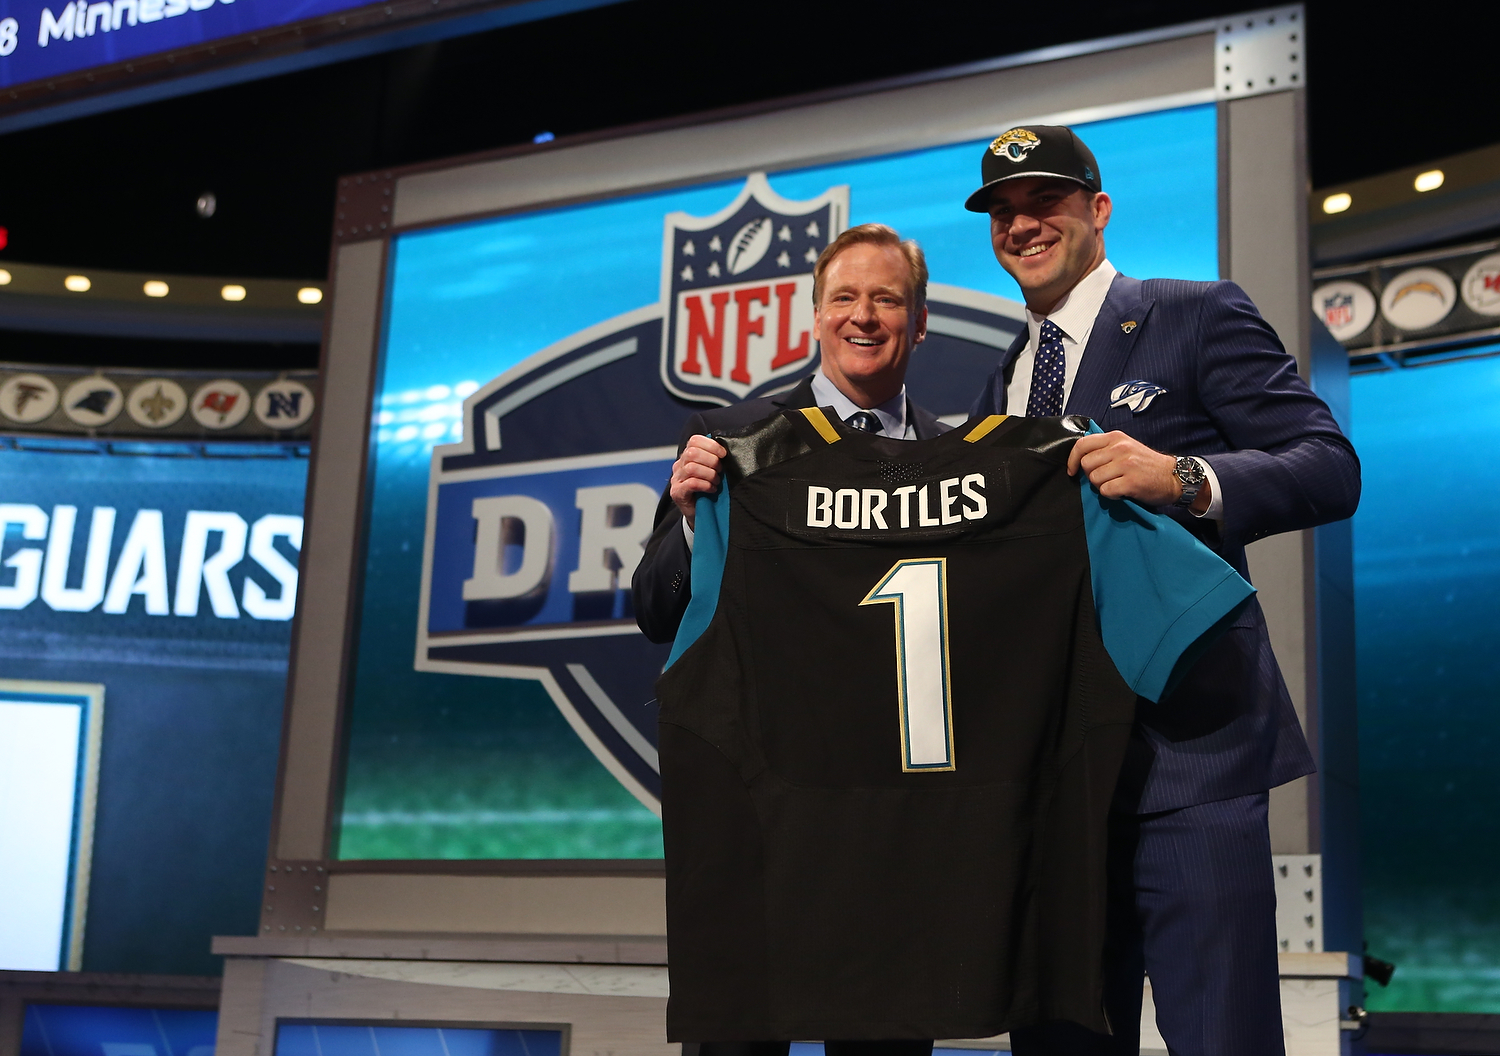 Blake Bortles and Roger Goodell pose for a photo during the 2014 NFL Draft at Radio City Music Hall on May 8, 2014 in New York, NY. (Perry Knotts/NFL)